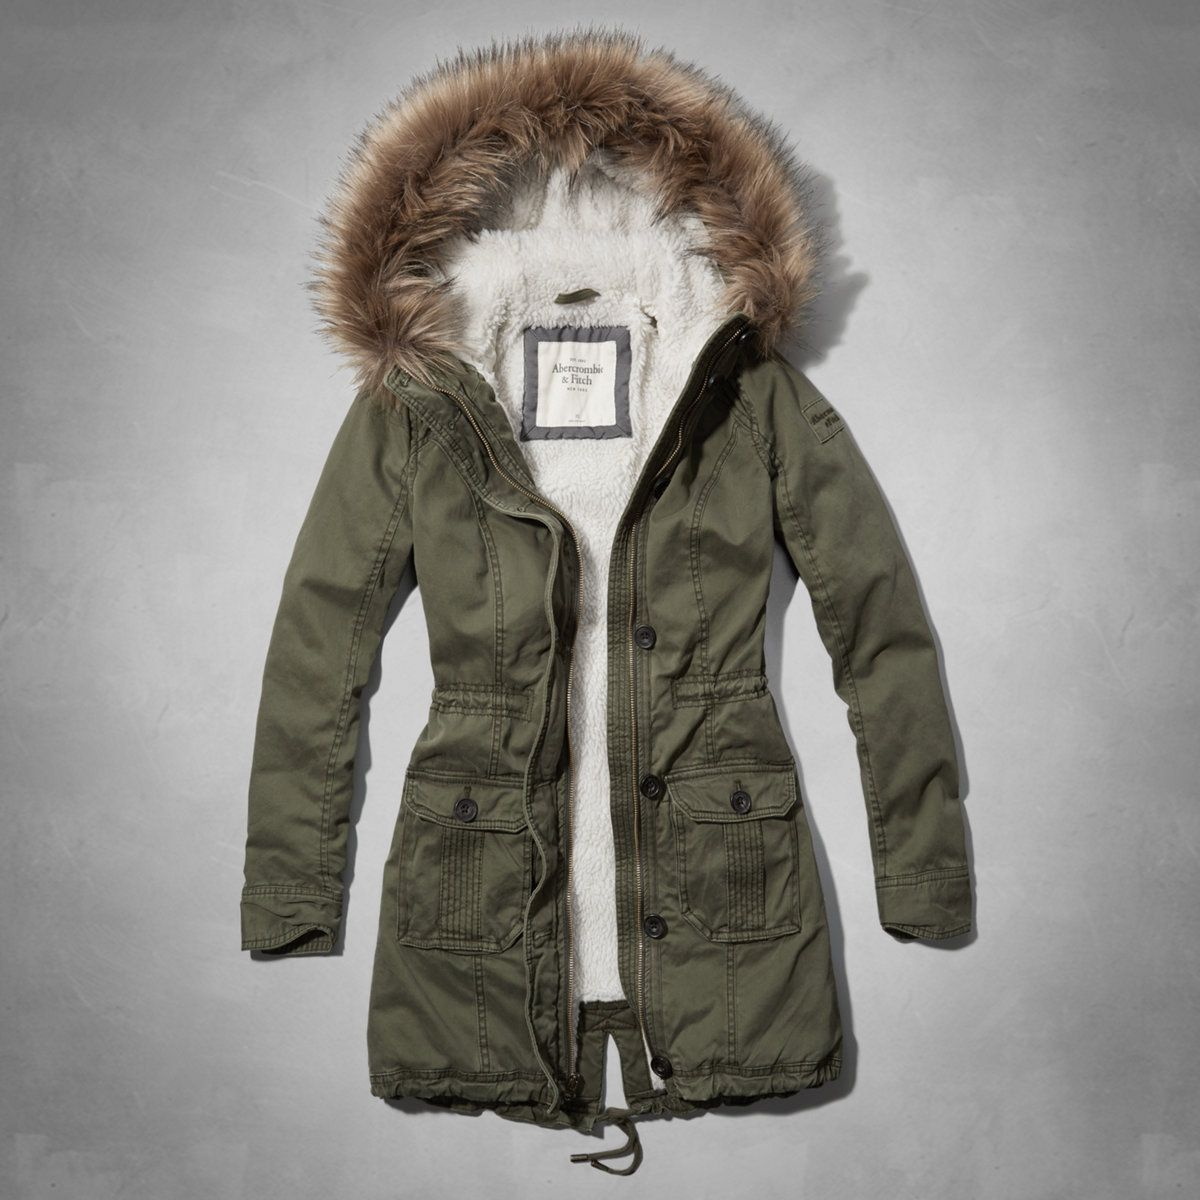 Supersoft Longer Length Parka With Cozy Sherpa Lining Faux Fur Bettina Heels Netty Beige Trimmed Hood Front Pockets Drawcord At Waist Full Zipper Closure Heritage Logo